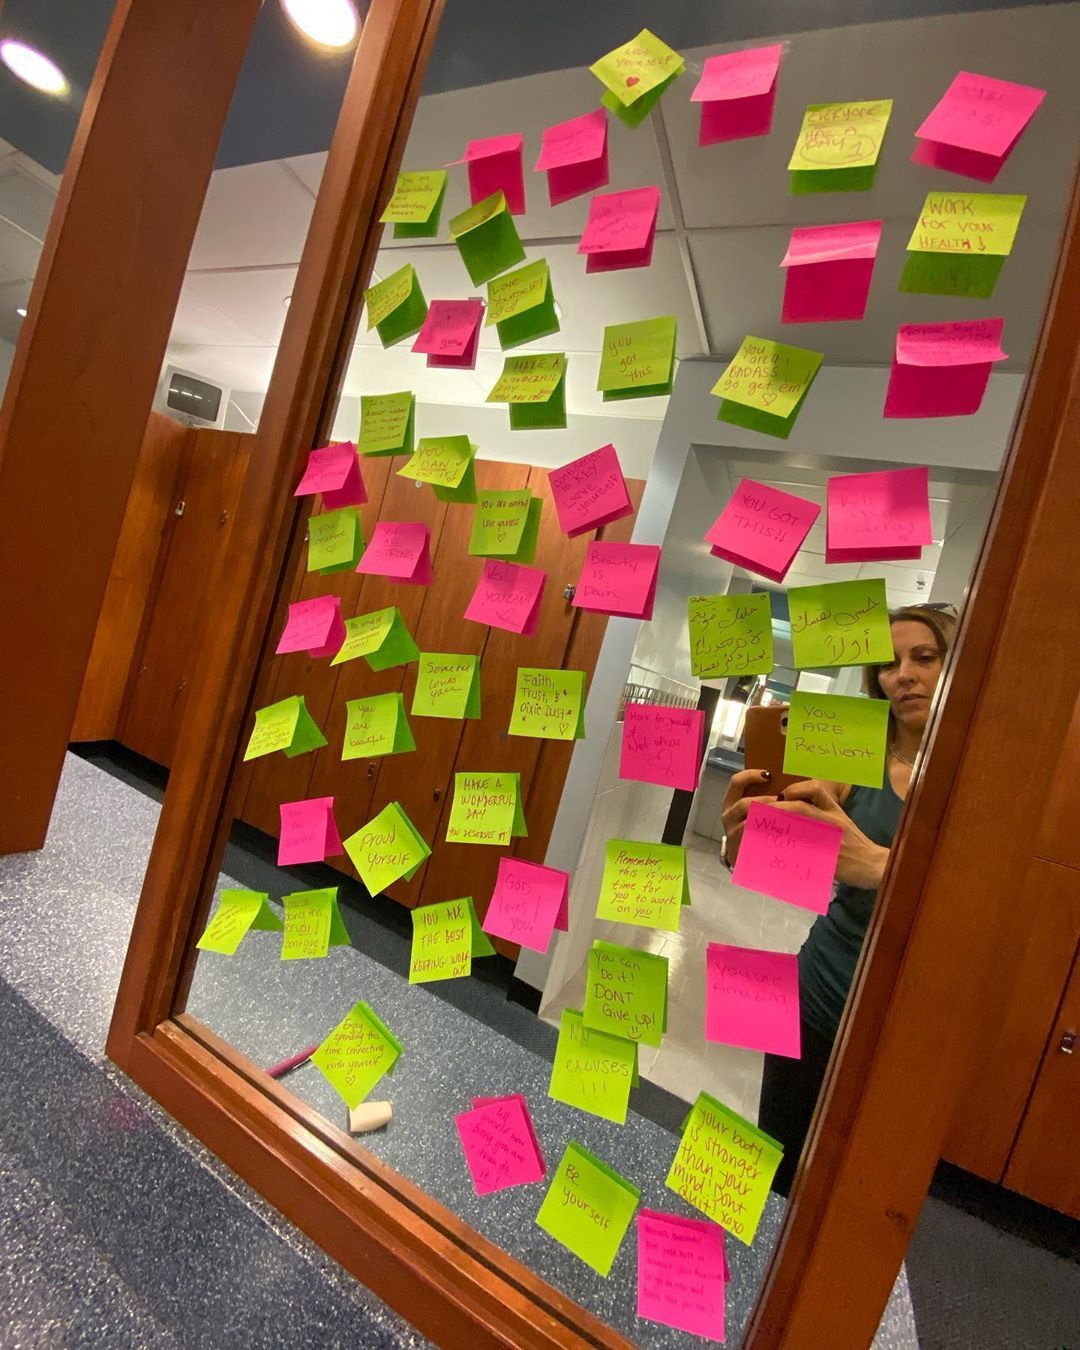 What you find in the ladies locker room on this Monday... a mirror full of encouragement! So much lo...